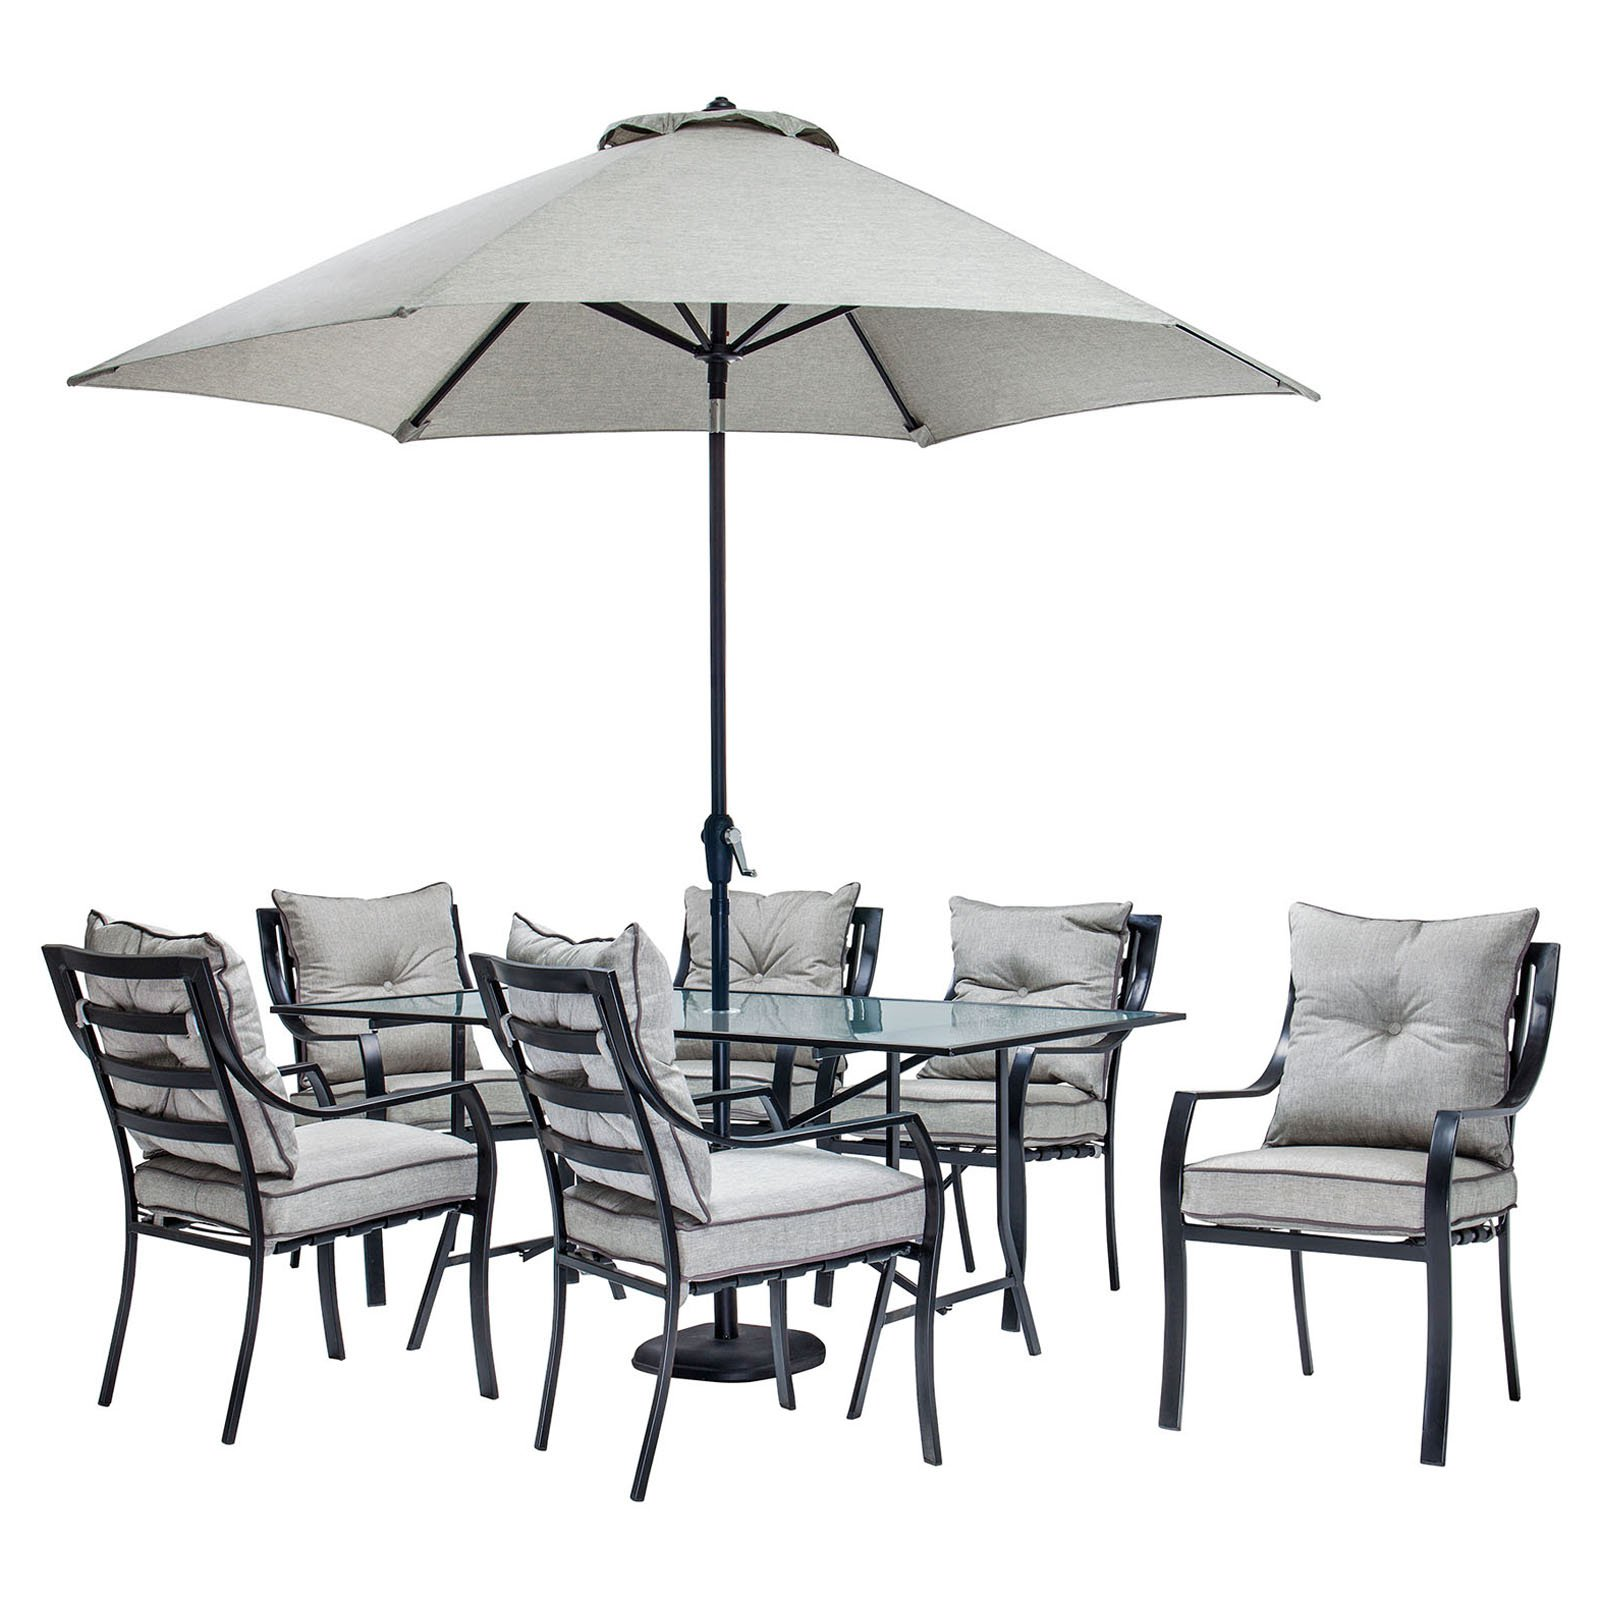 Hanover Lavallette 7 Piece Outdoor Dining Set With Table Umbrella And Stand    Walmart.com